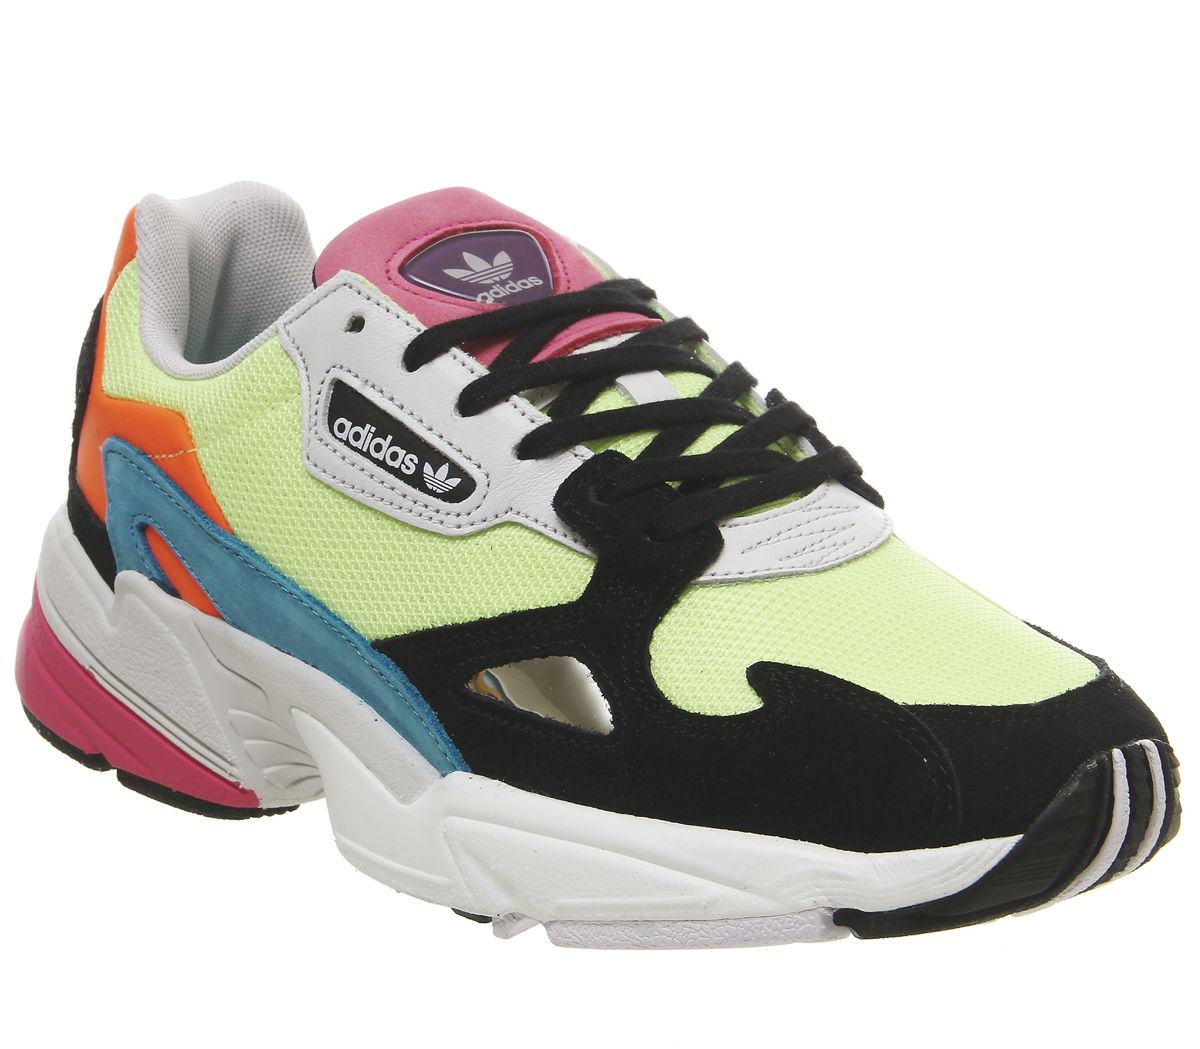 Details about Womens Adidas Falcon Trainers Hi Res Yellow Core Black Trainers Shoes